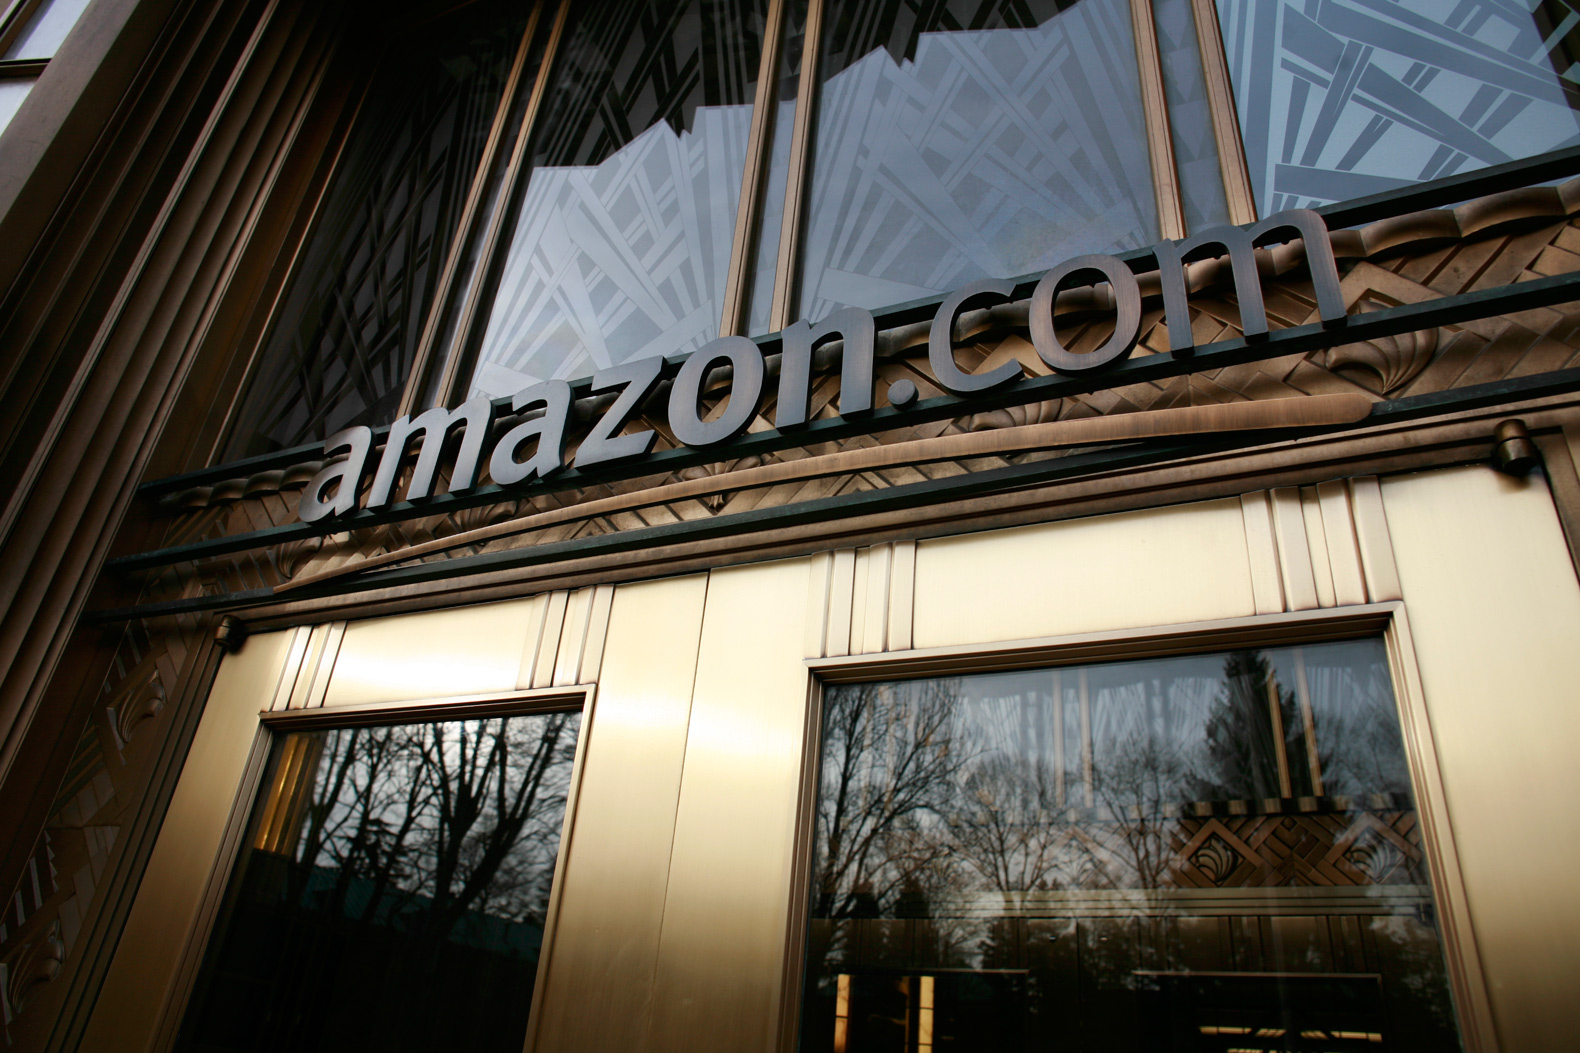 Over 6,000 employees demand Amazon take climate change seriously